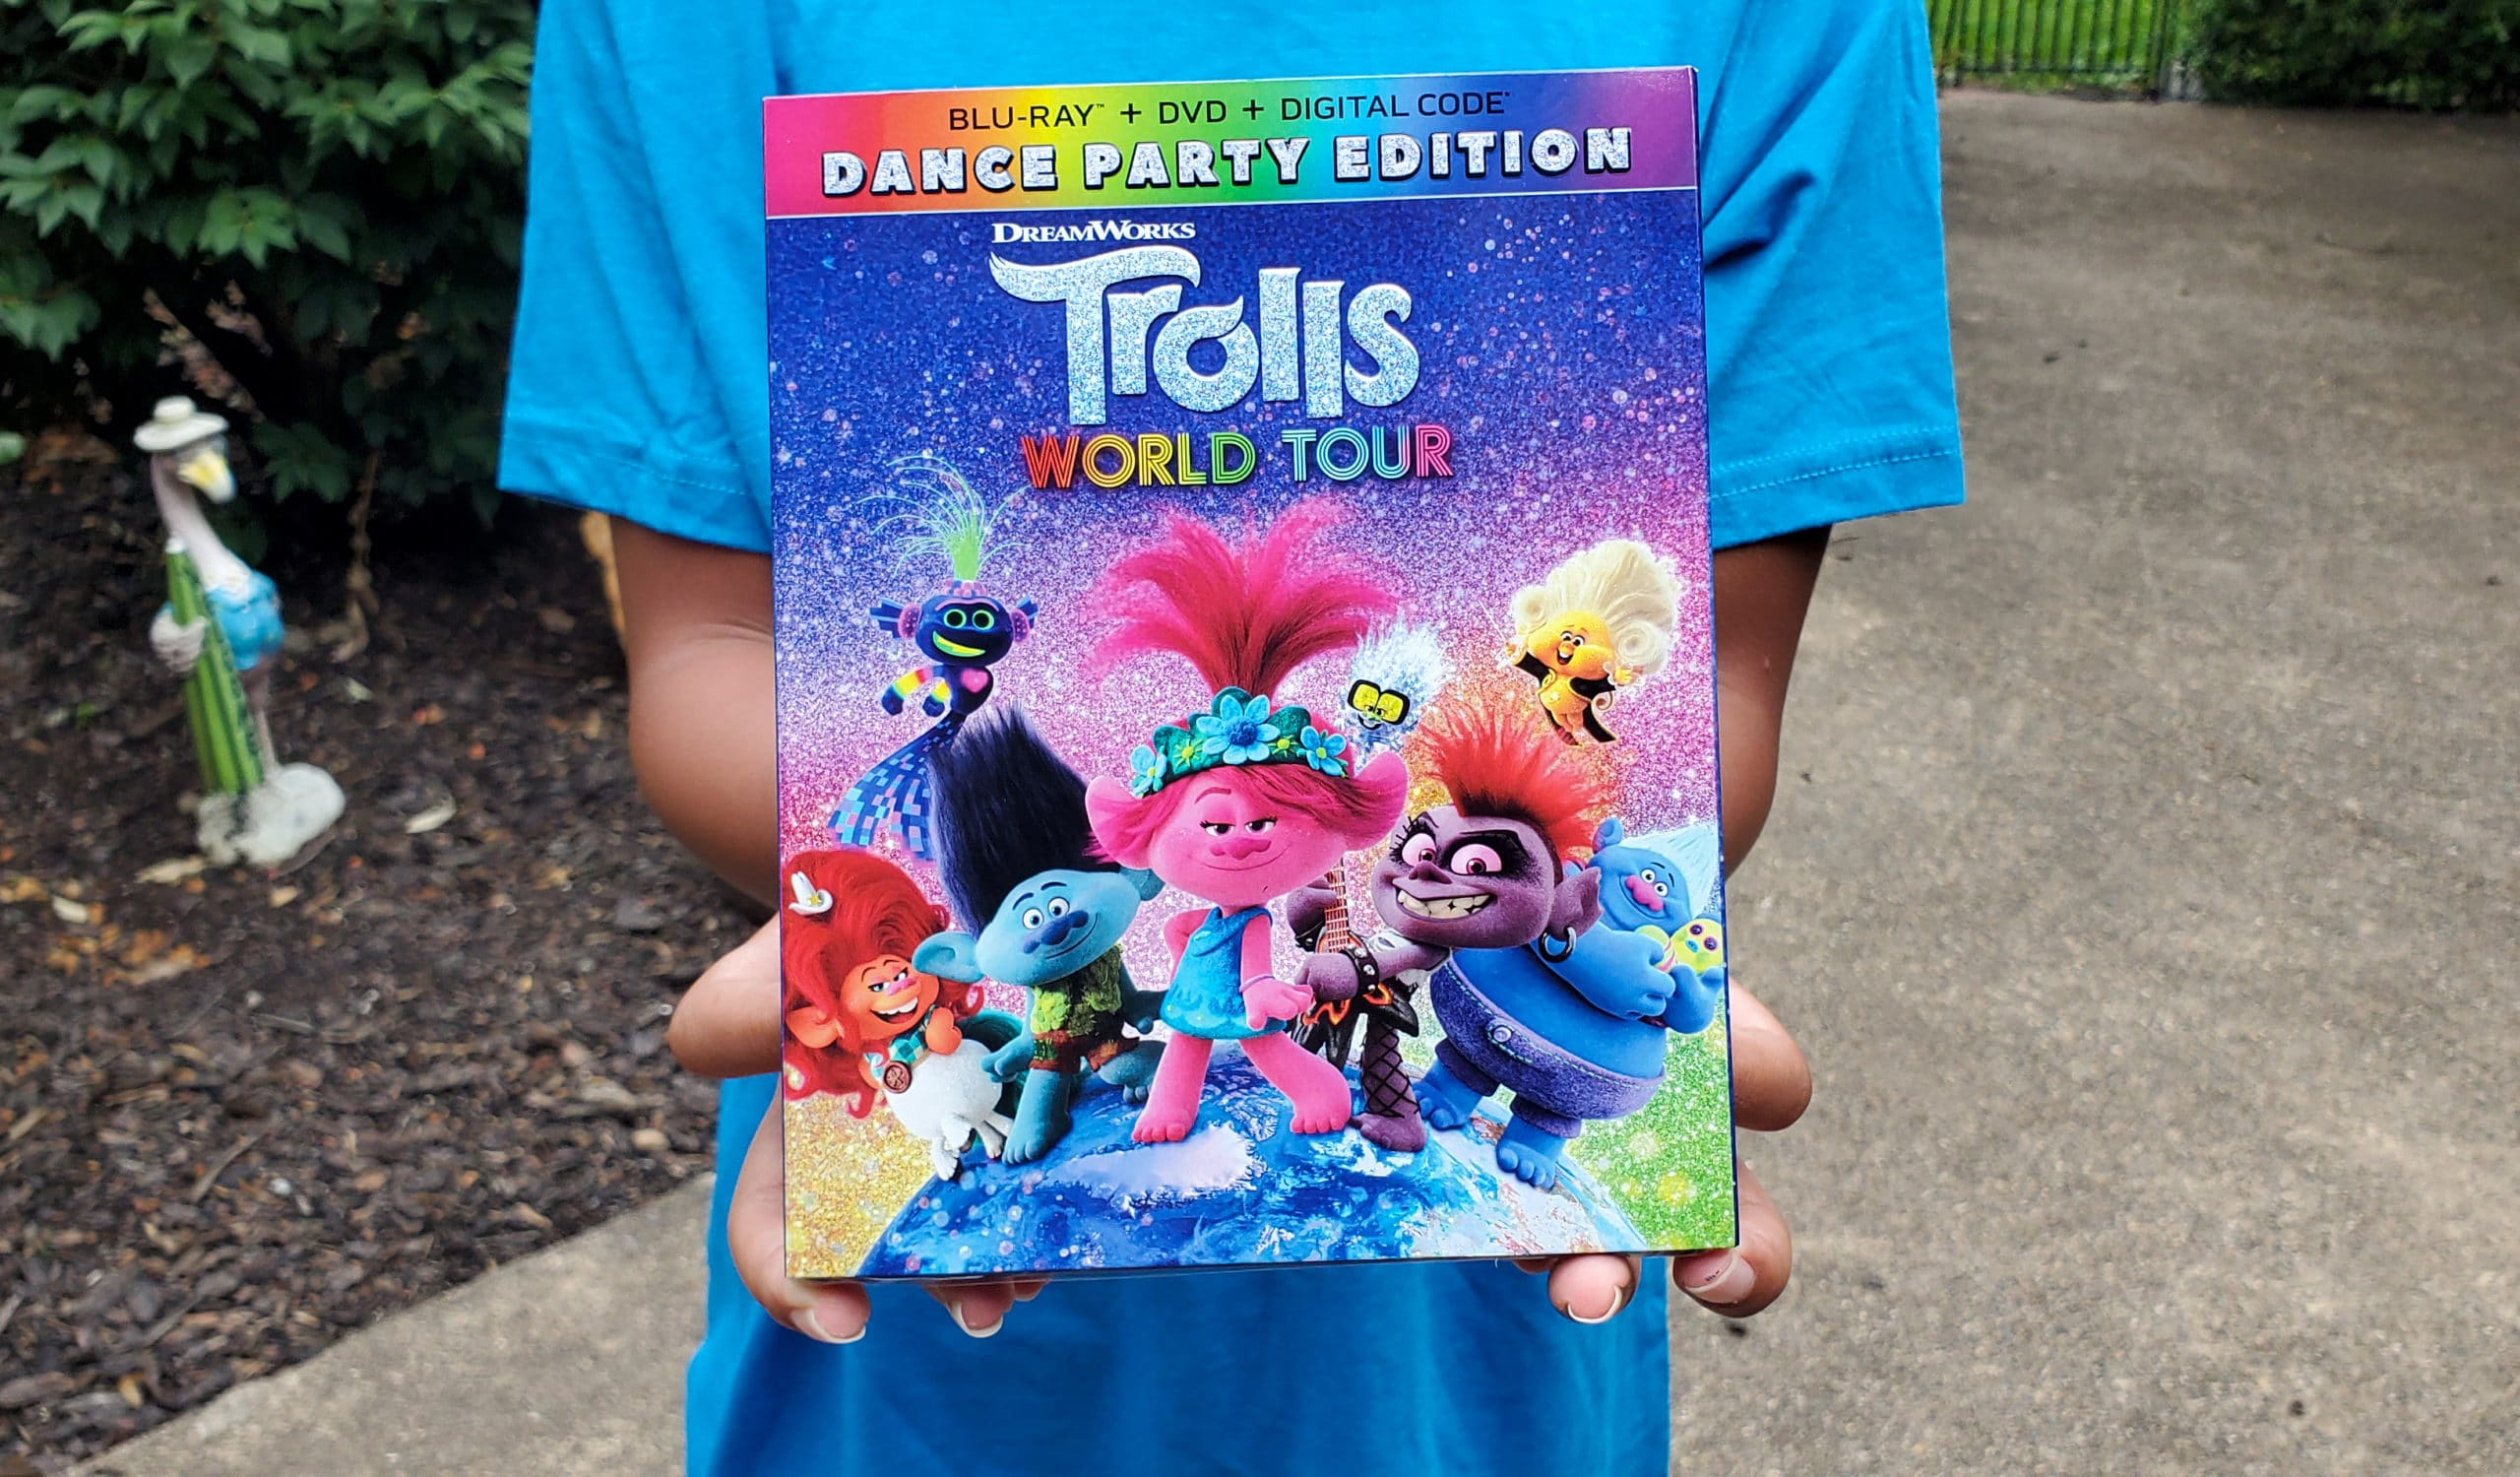 Trolls World Tour Dance Party Edition DVD. View a special Trolls World Tour Unboxing in honor of the release of the Dance Party Edition, available on Digital 4K, Blu-ray, and DVD today!